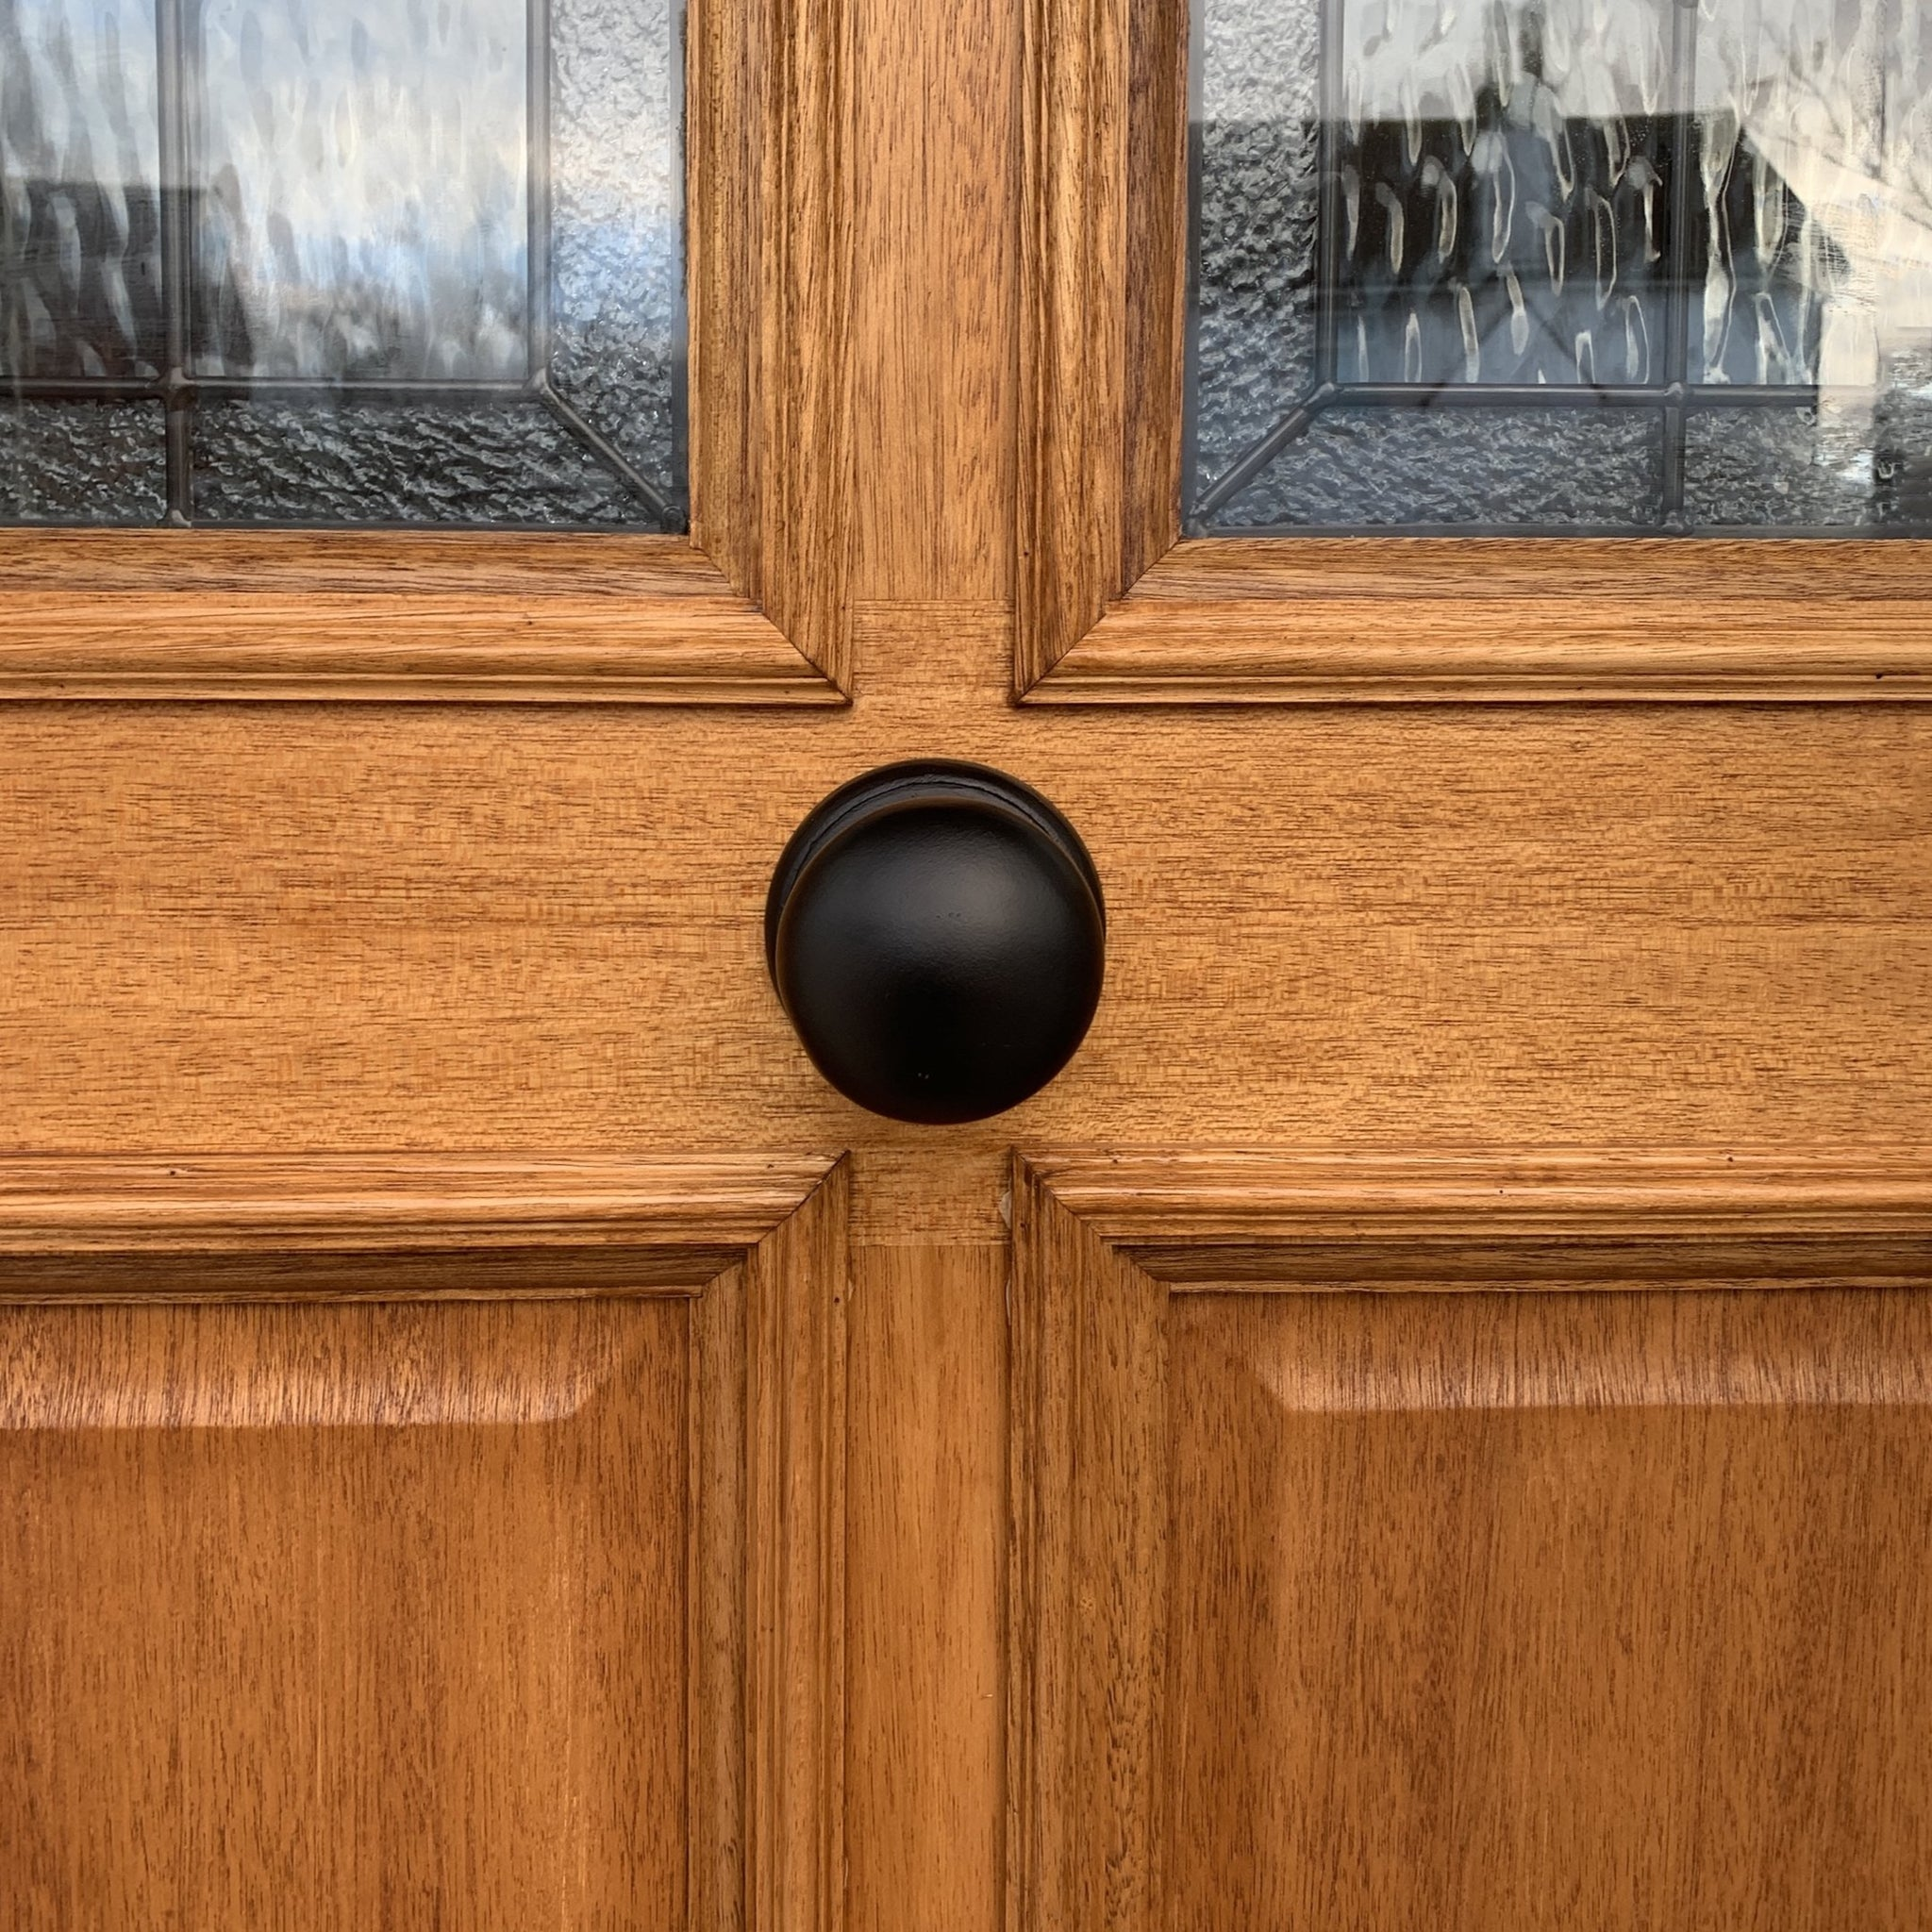 SHOW Centre Door Knob on wooden front door